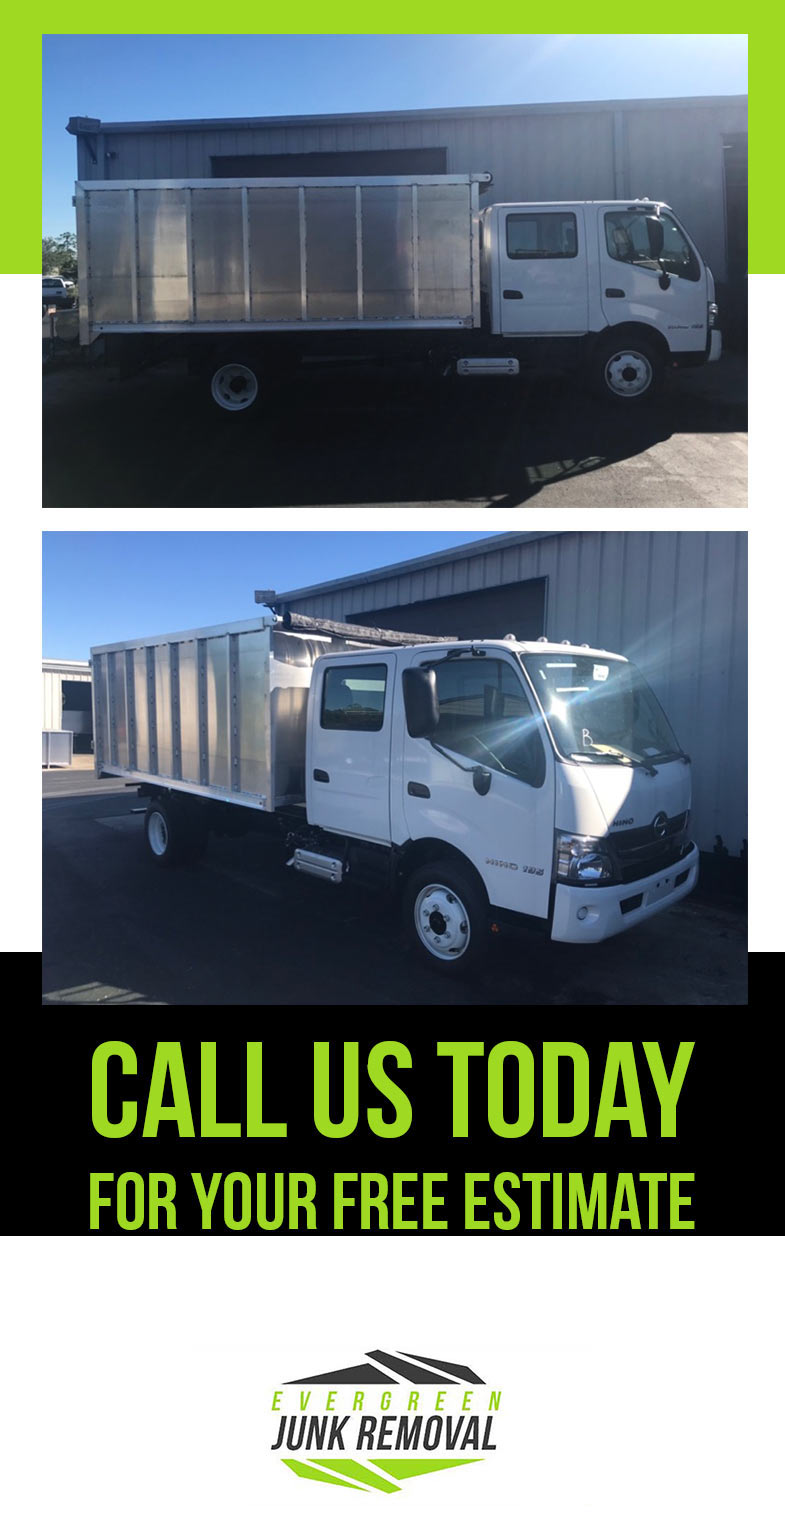 Junk-Removal-Clewiston